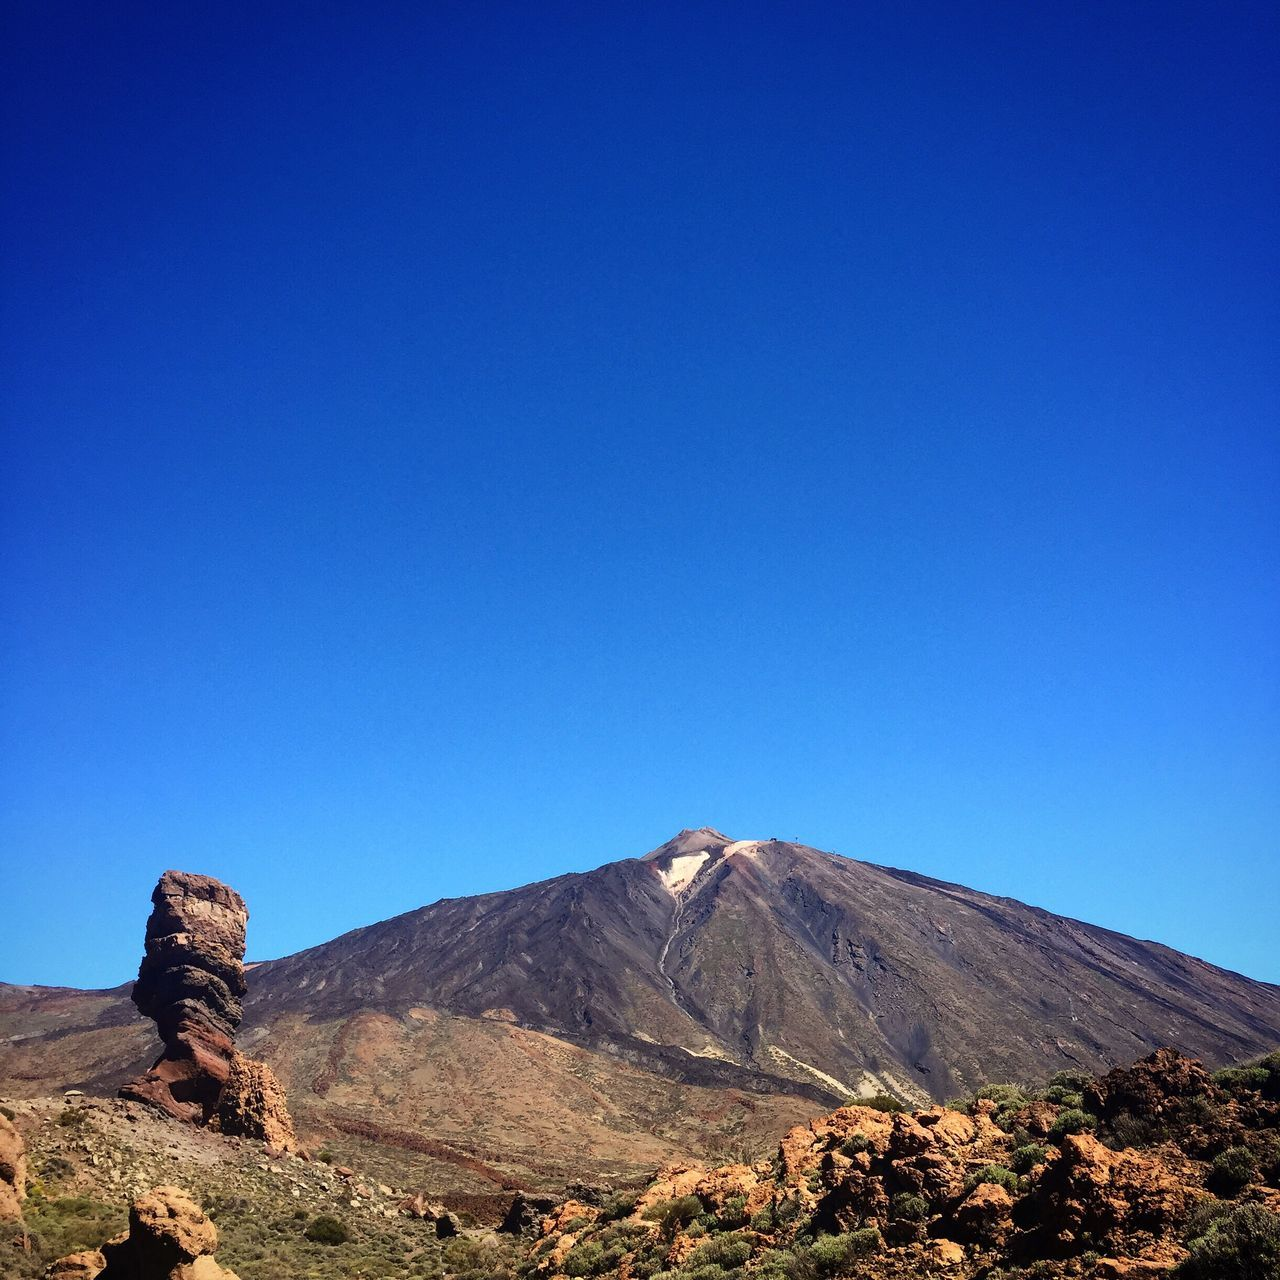 Teide Teidenationalpark Tenerife Volcano Volcanic Landscape Nature Naturaleza Volcán Clear Sky Blue Physical Geography Beauty In Nature No People Paradise Canarias Islas Canarias Island SPAIN España Geology IPhone Iphone6 IPhoneography Iphonephotography